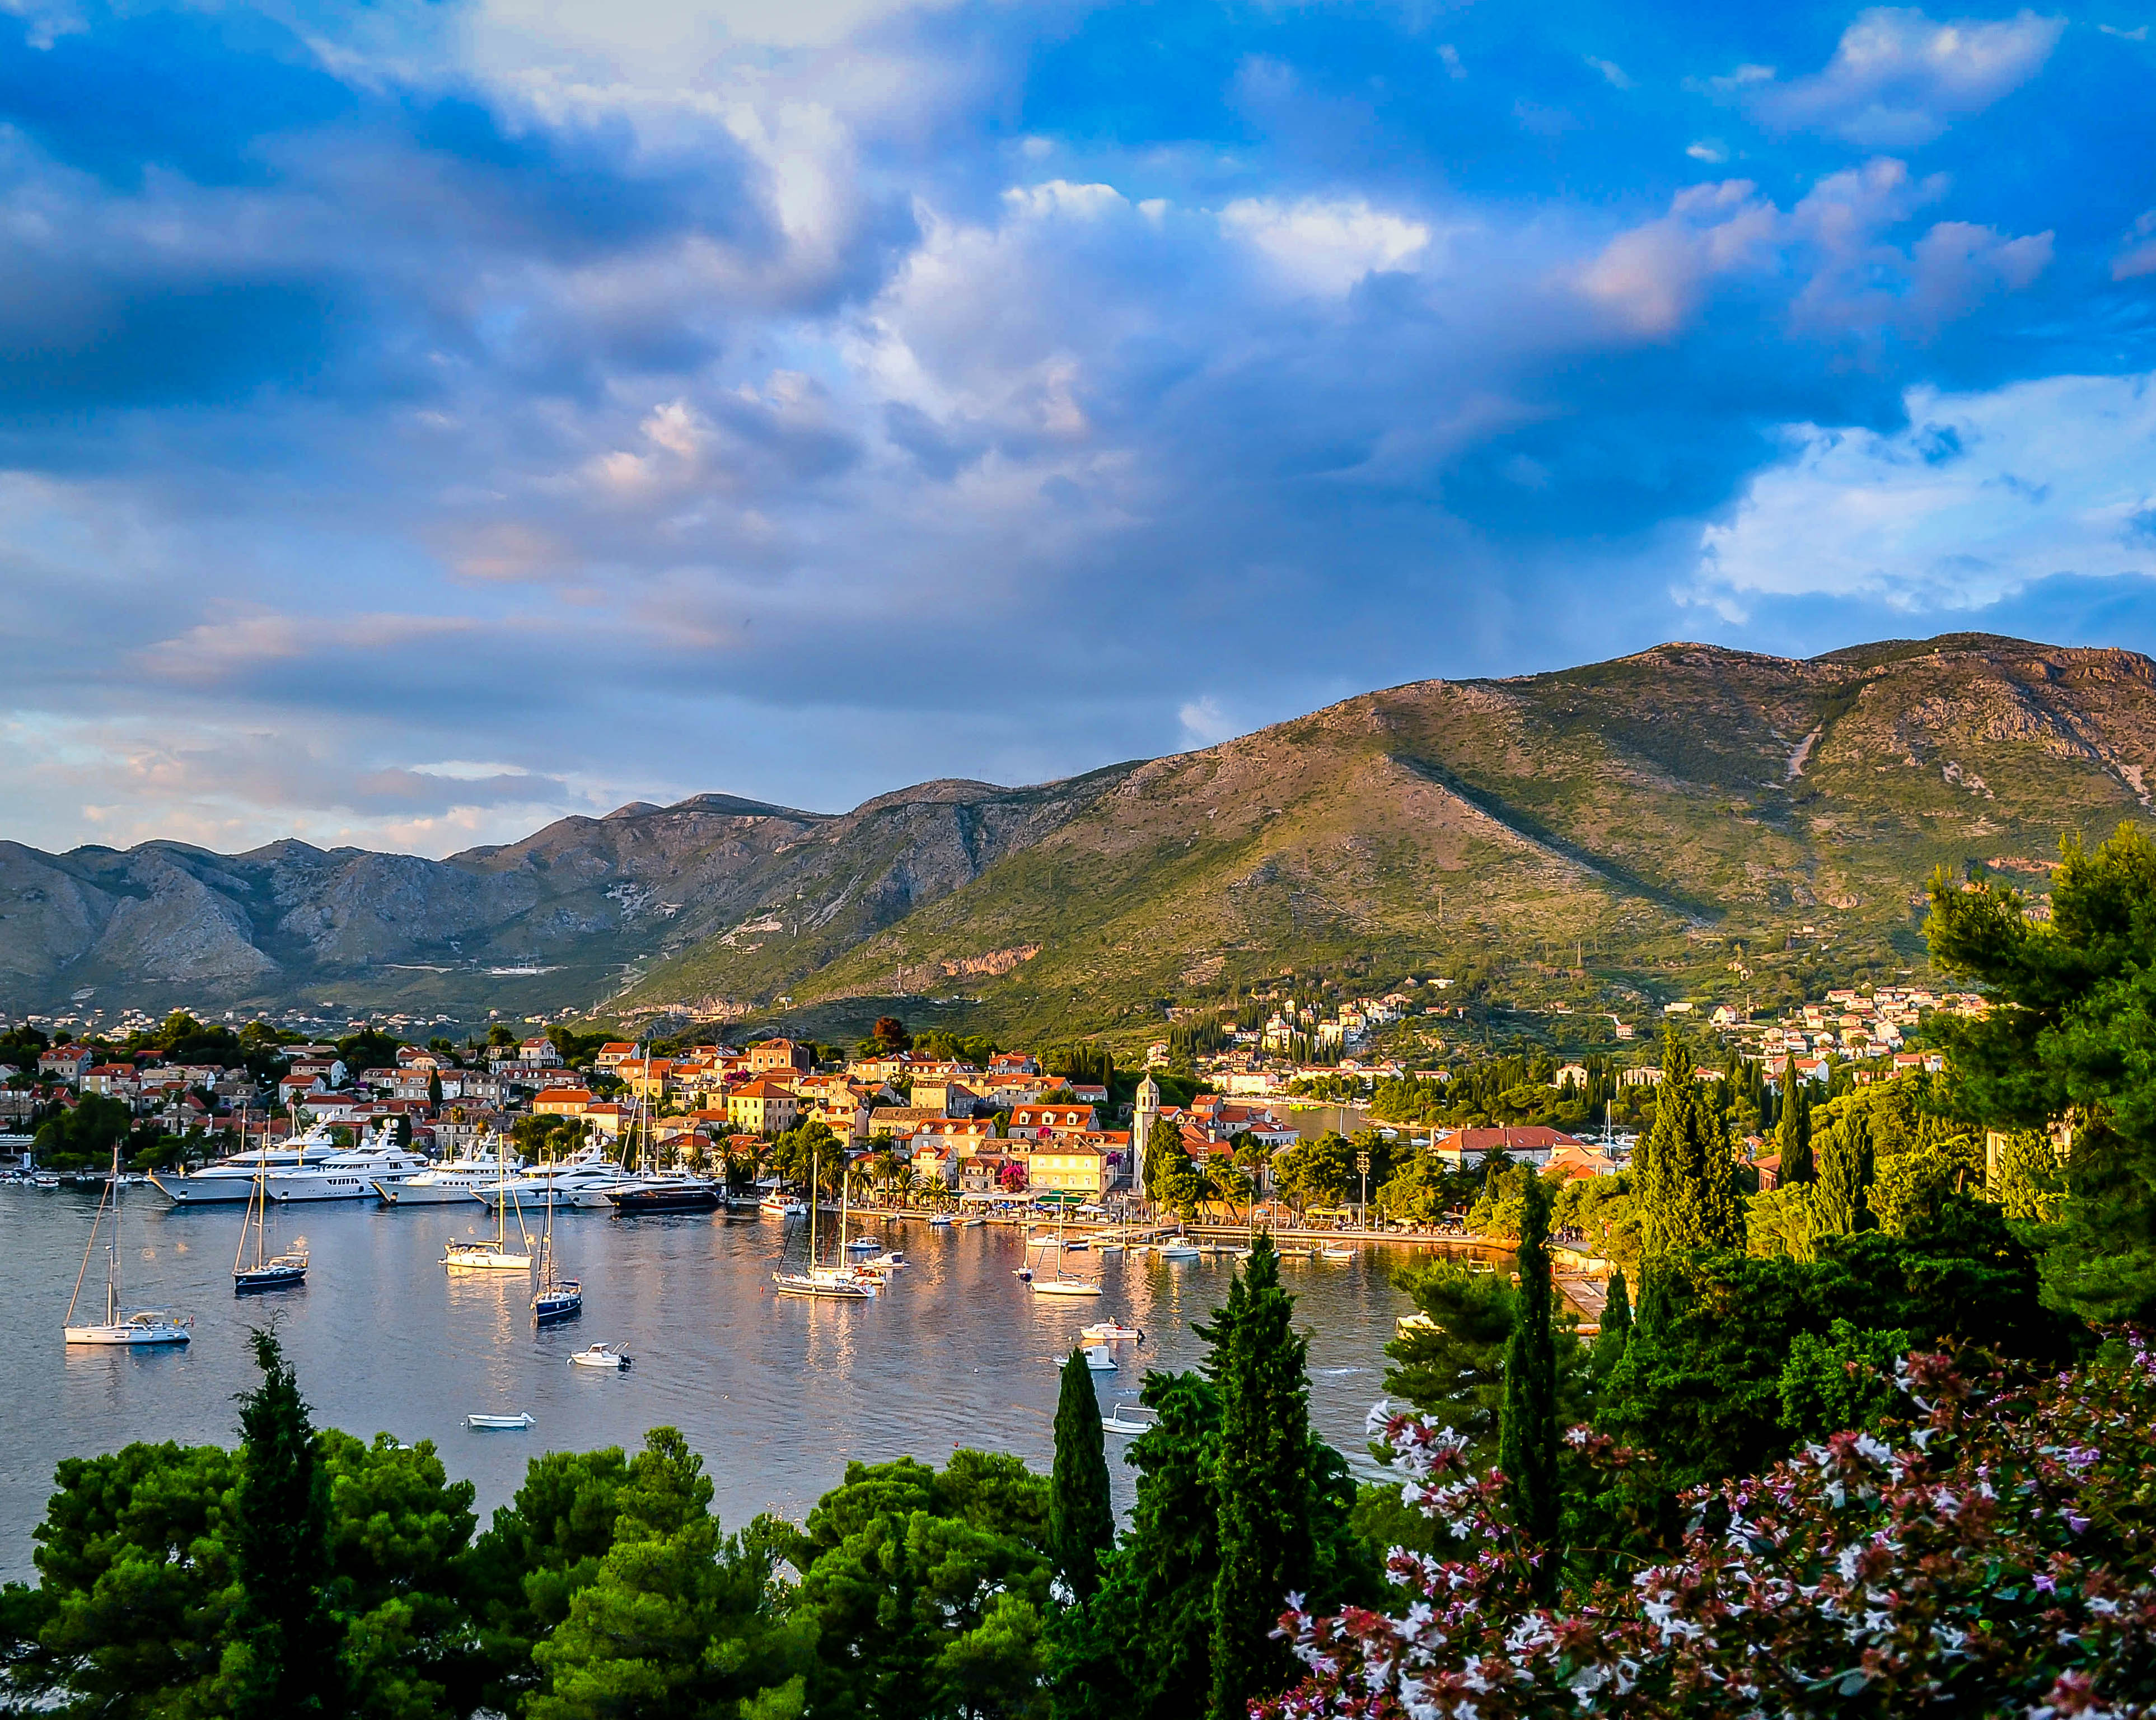 Cavtat, Croatia - Monterrasol small group tours to Cavtat, Croatia. Travel agency offers small group car tours to see Cavtat in Croatia. Order small group tour to Cavtat with departure date on request.